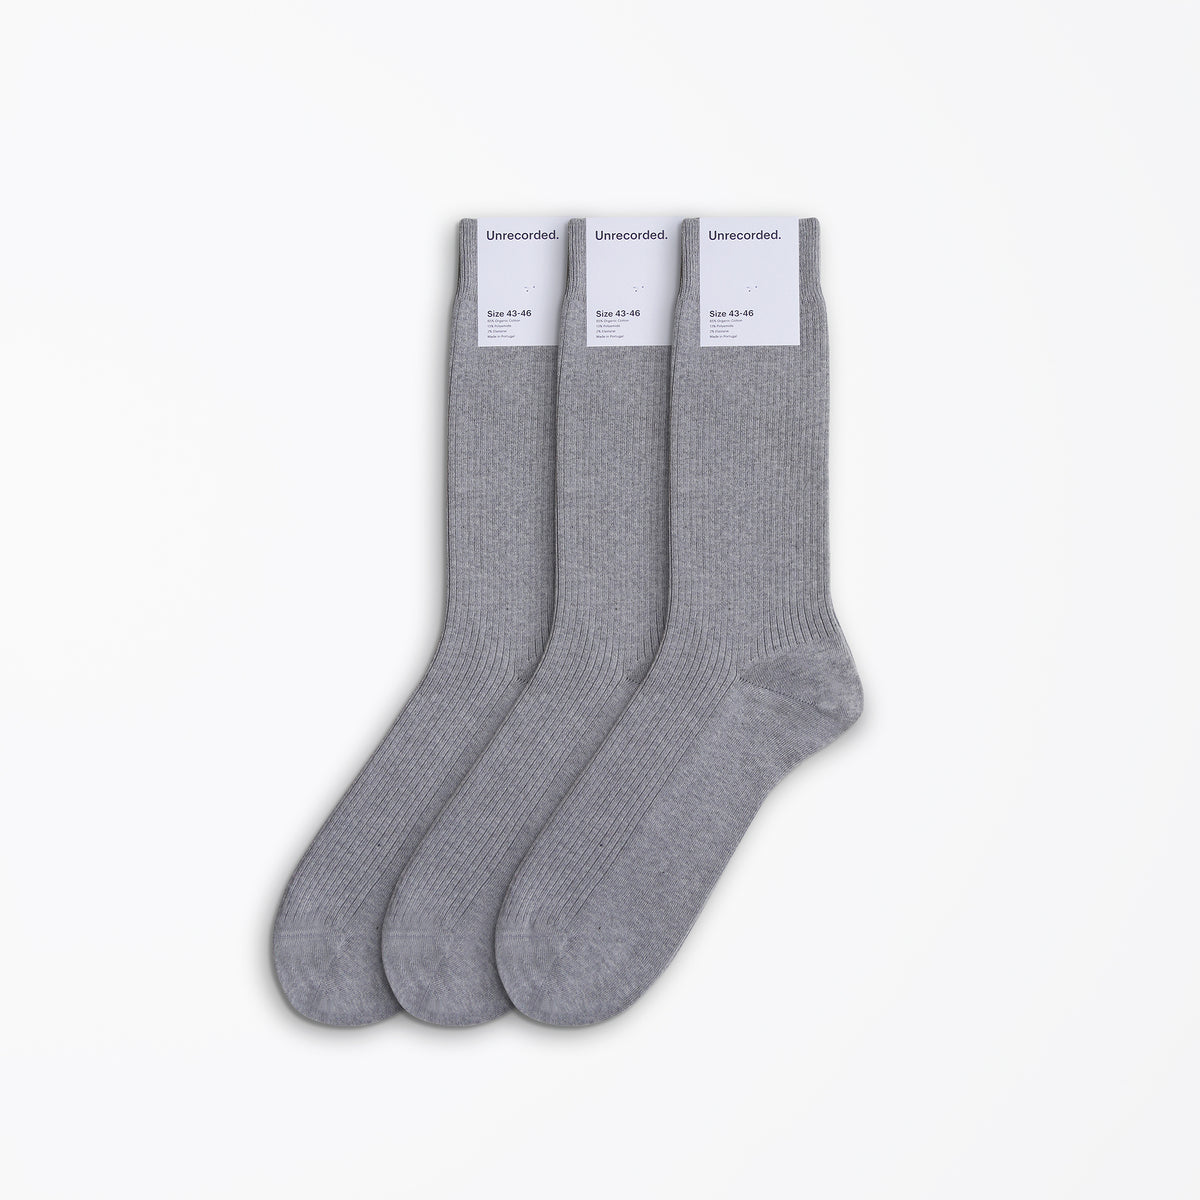 Socks Triple Grey - Unrecorded